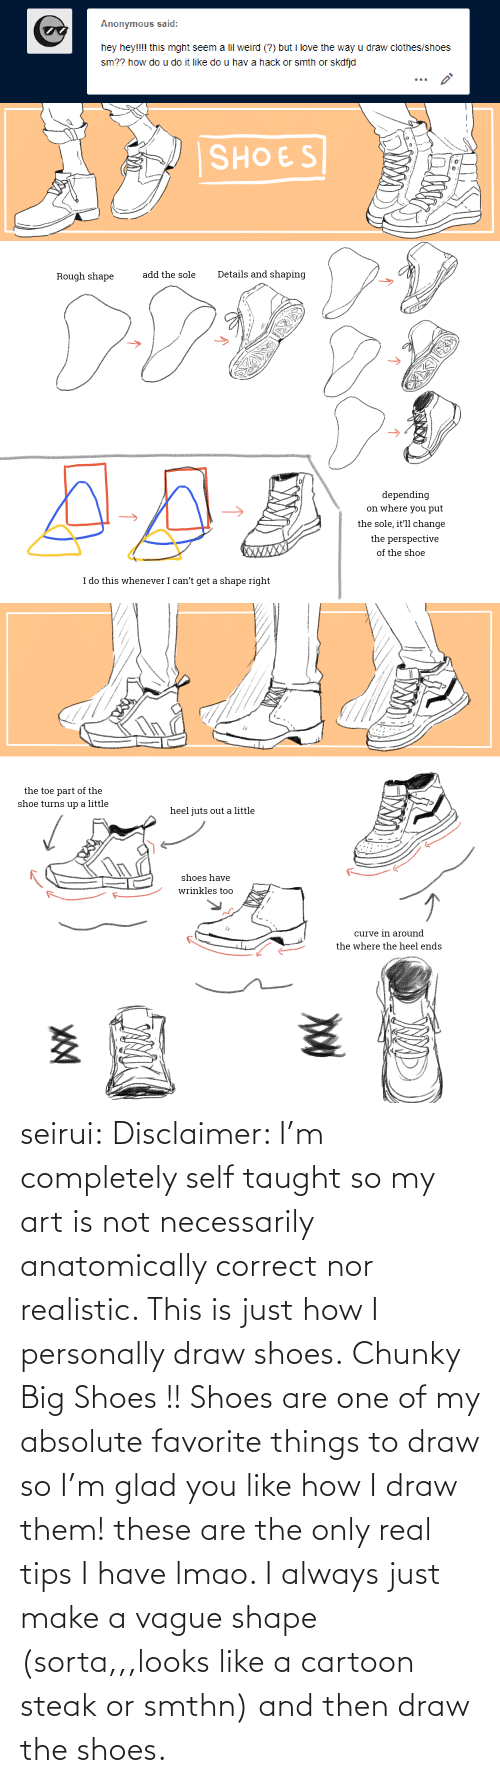 Do U: Anonymous said:  hey hey!!!! this mght seem a lil weird (?) but i love the way u draw clothes/shoes  sm?? how do u do it like do u hav a hack or smth or skdfjd   SHOES  Details and shaping  add the sole  Rough shape  depending  on where you put  the sole, it'll change  the perspective  XWXXX  of the shoe  I do this whenever I can't get a shape right   the toe part of the  shoe turns up a little  heel juts out a little  shoes have  wrinkles too  curve in around  the where the heel ends seirui: Disclaimer: I'm completely self taught so my art is not necessarily anatomically correct nor realistic. This is just how I personally draw shoes. Chunky Big Shoes !! Shoes are one of my absolute favorite things to draw so I'm glad you like how I draw them! these are the only real tips I have lmao. I always just make a vague shape (sorta,,,looks like a cartoon steak or smthn) and then draw the shoes.